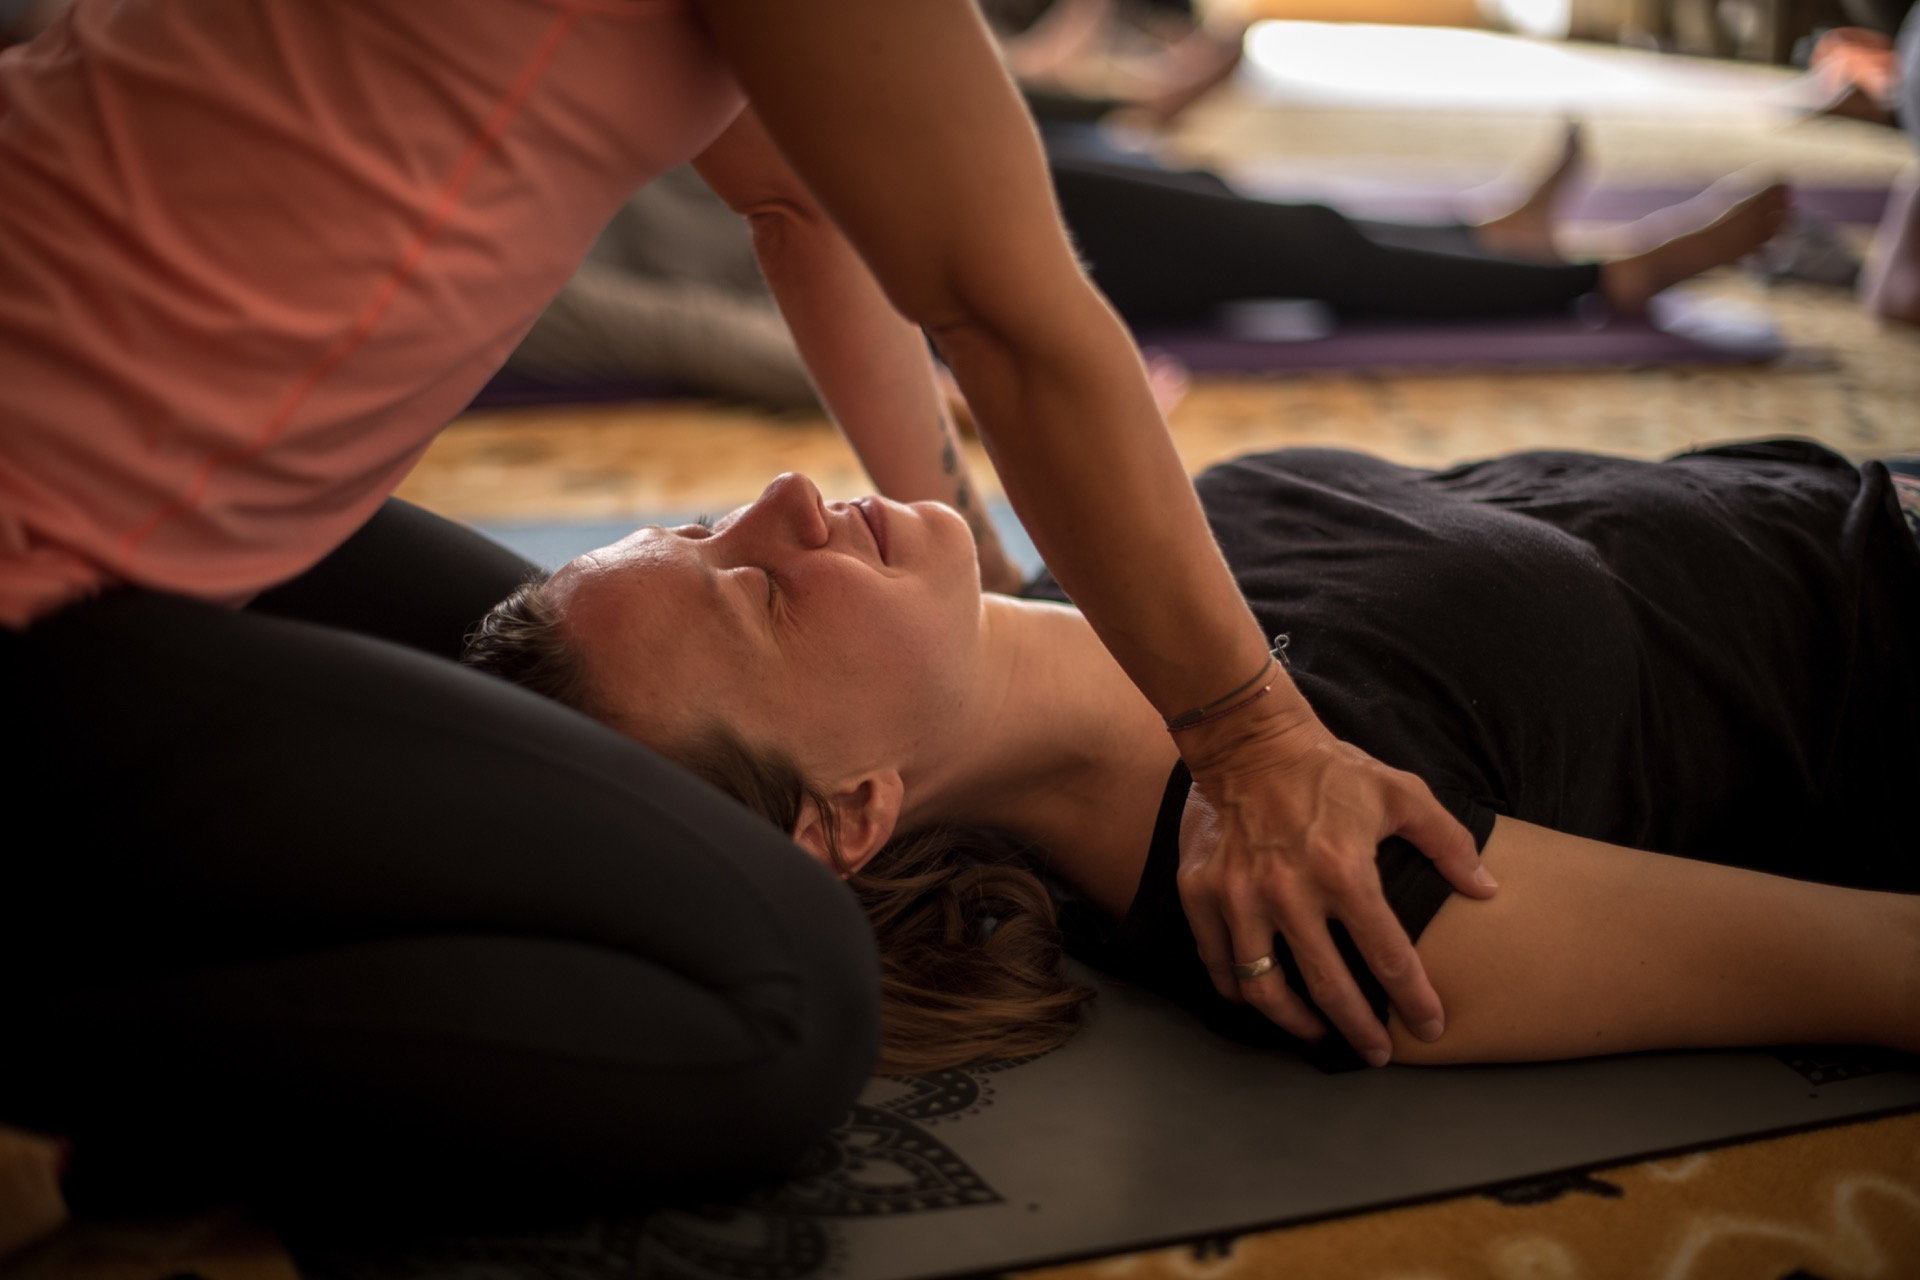 Hie-Kim-Friends-2019-Yoga-Retreat-Alina-Matis-Photography-166 - Hie Kim Yoga - Yoga Retreat - Yoga Workshops und Reisen